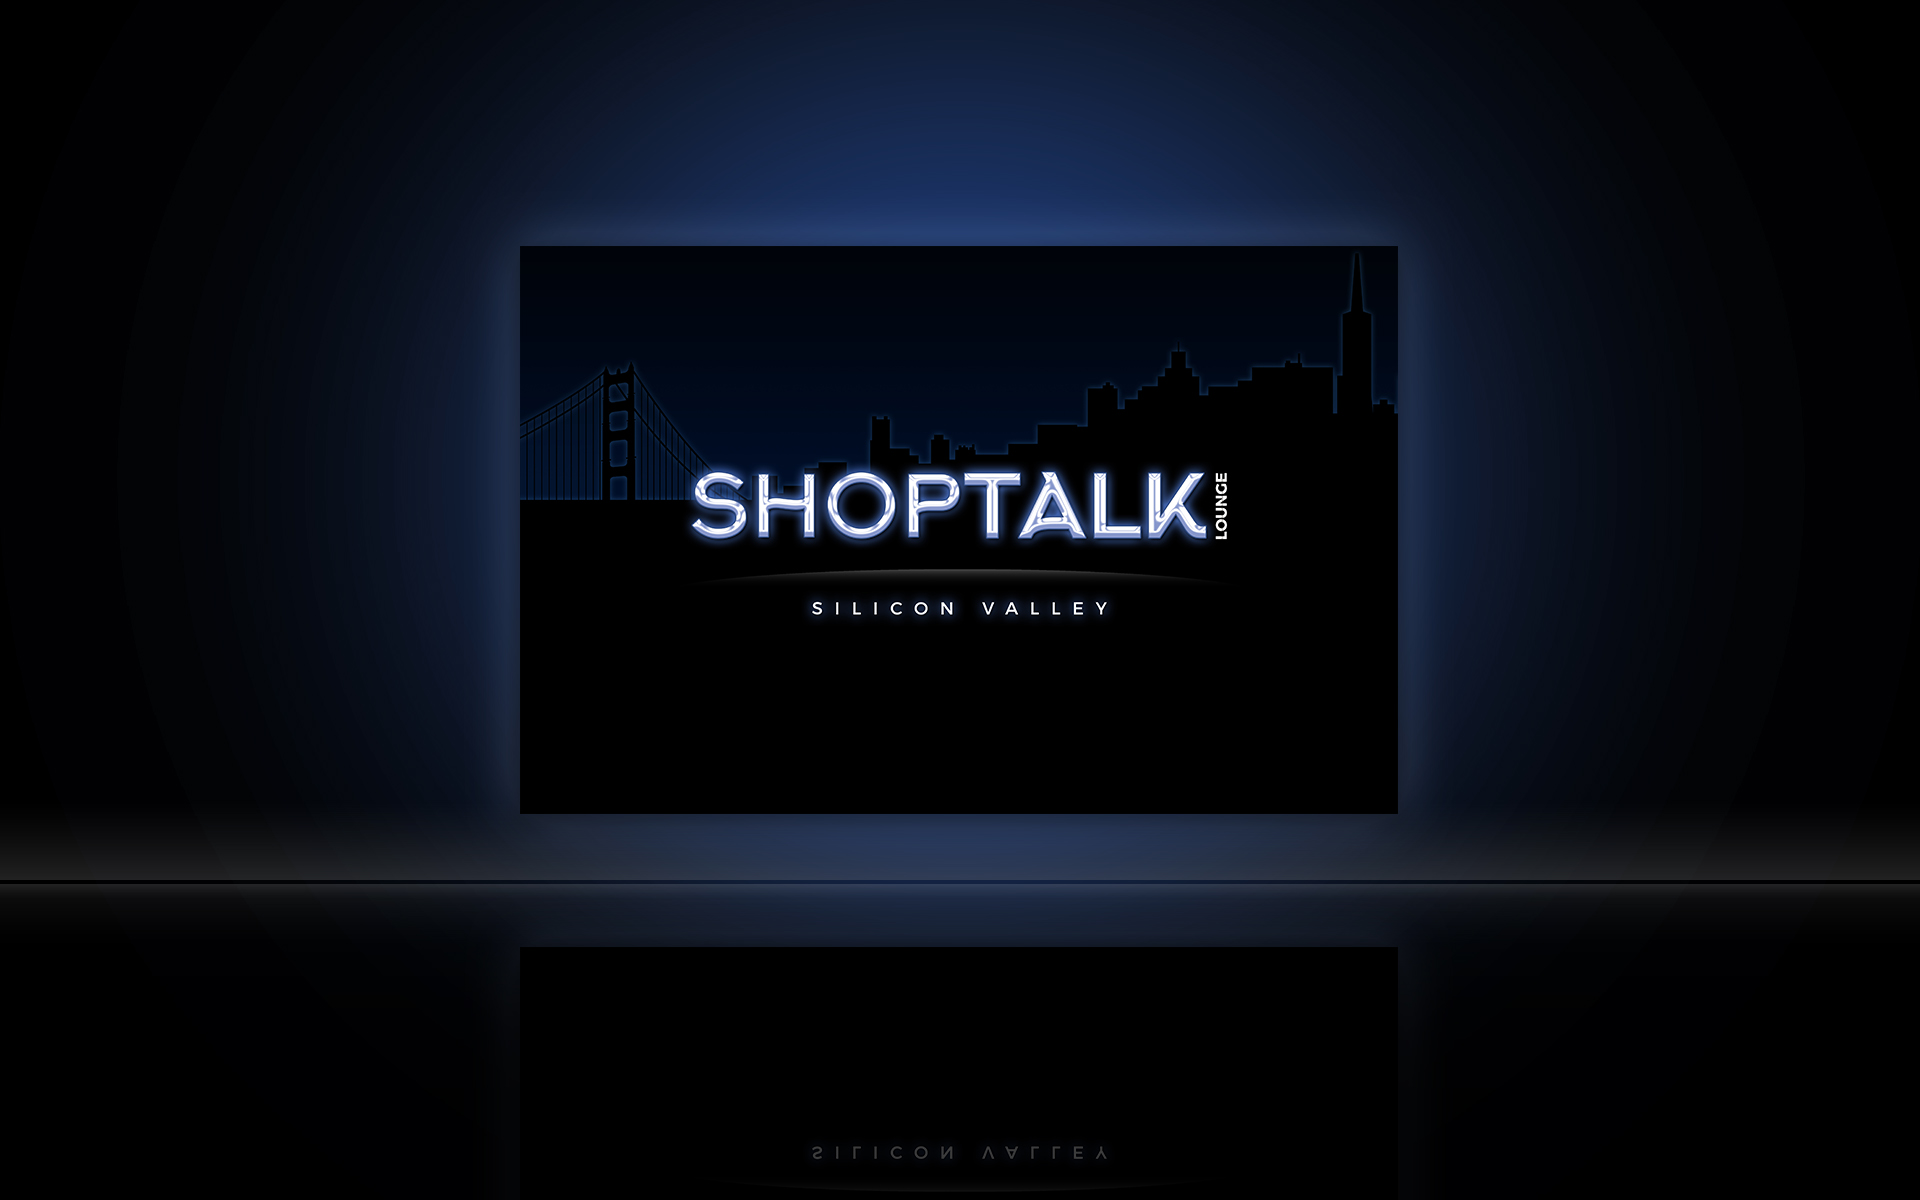 ShopTalk Lounge Video - TV Series by SkillSets Online New Logo Proof by Graham Hnedak Brand G Creative May 2016.jpg